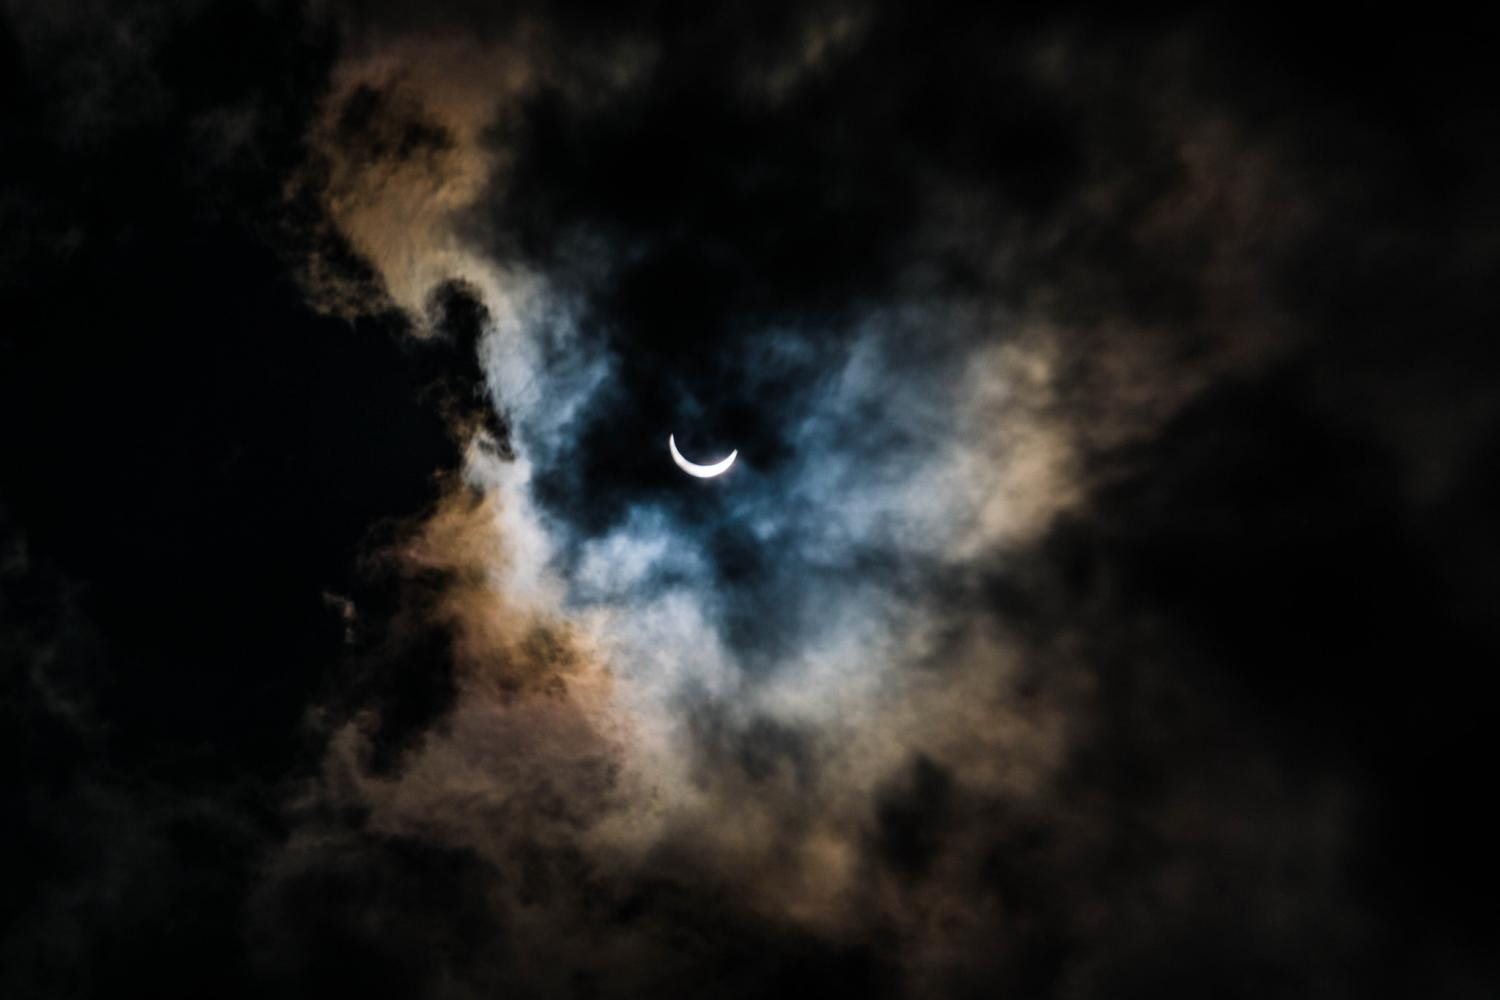 The+solar+eclipse+as+seen+by+onlookers+during+its+peak+coverage.+